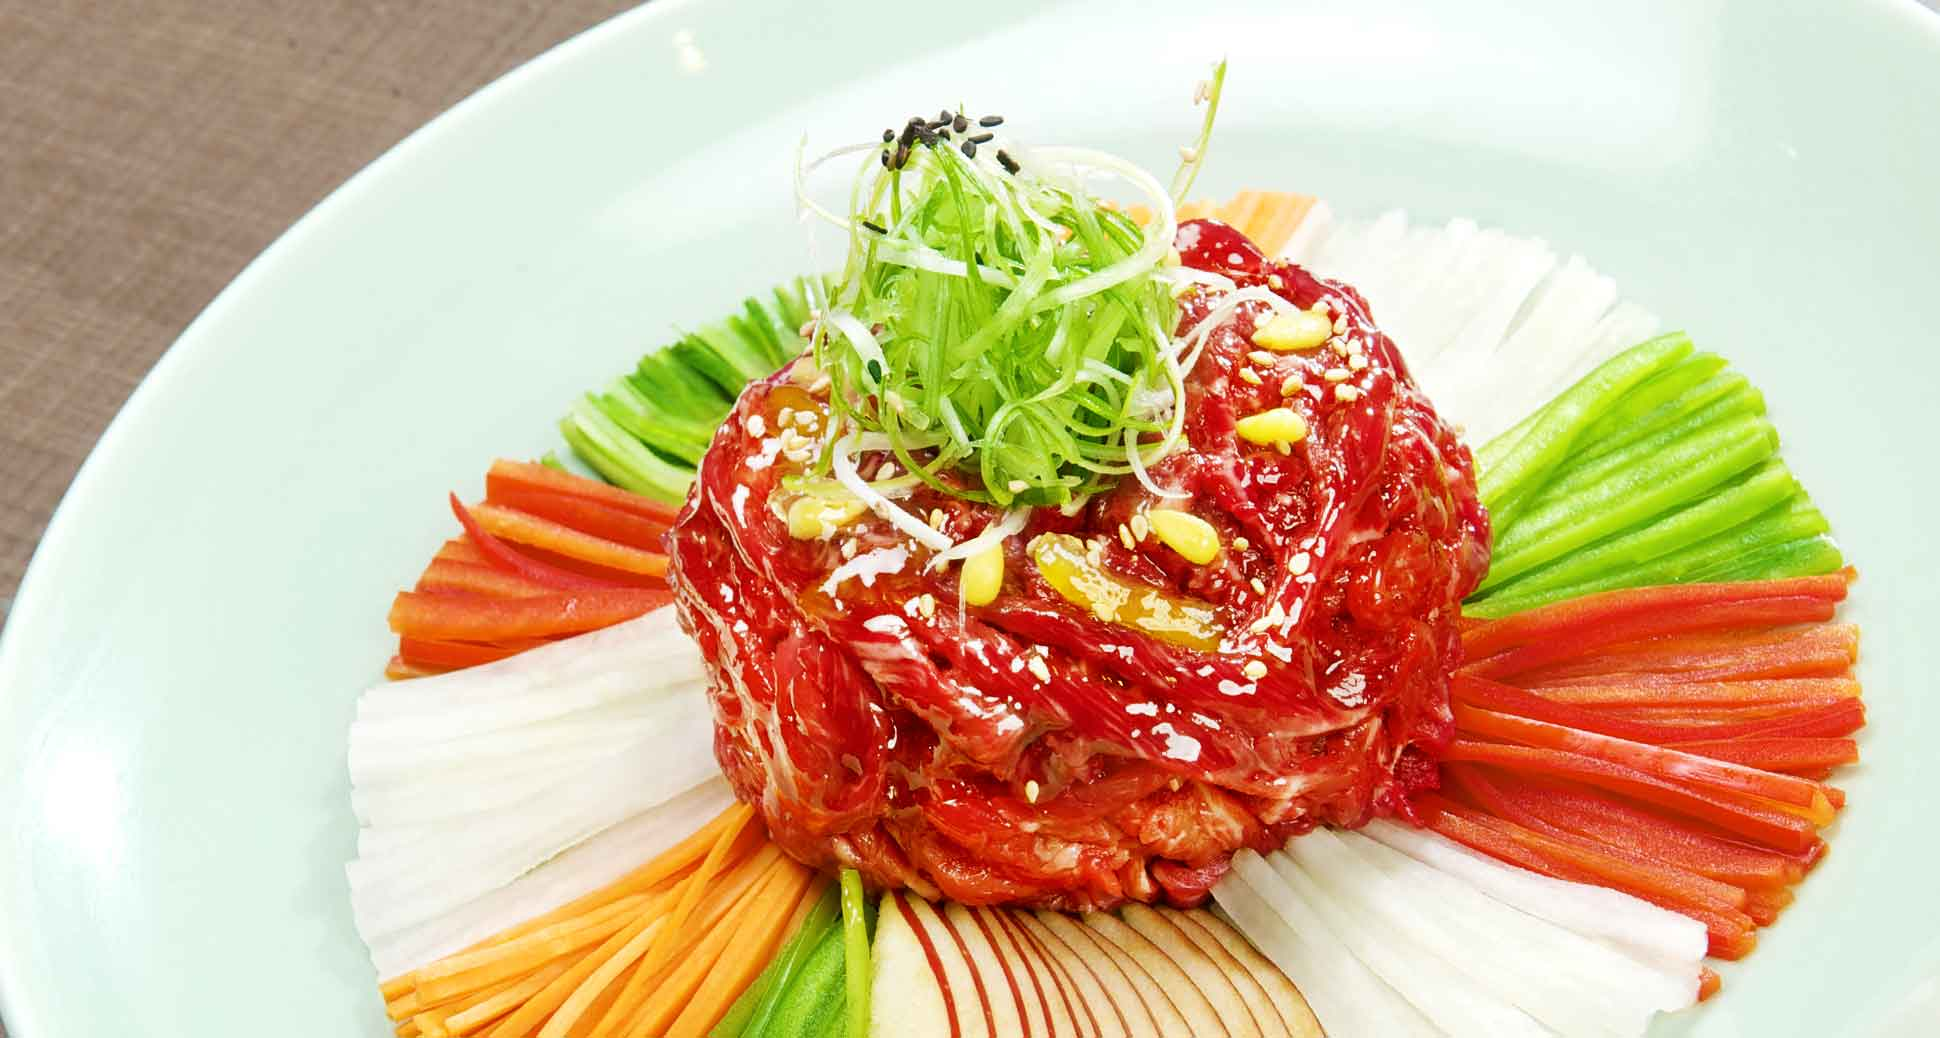 Korean Beef Tartare: For meat lovers, Love at First Bite